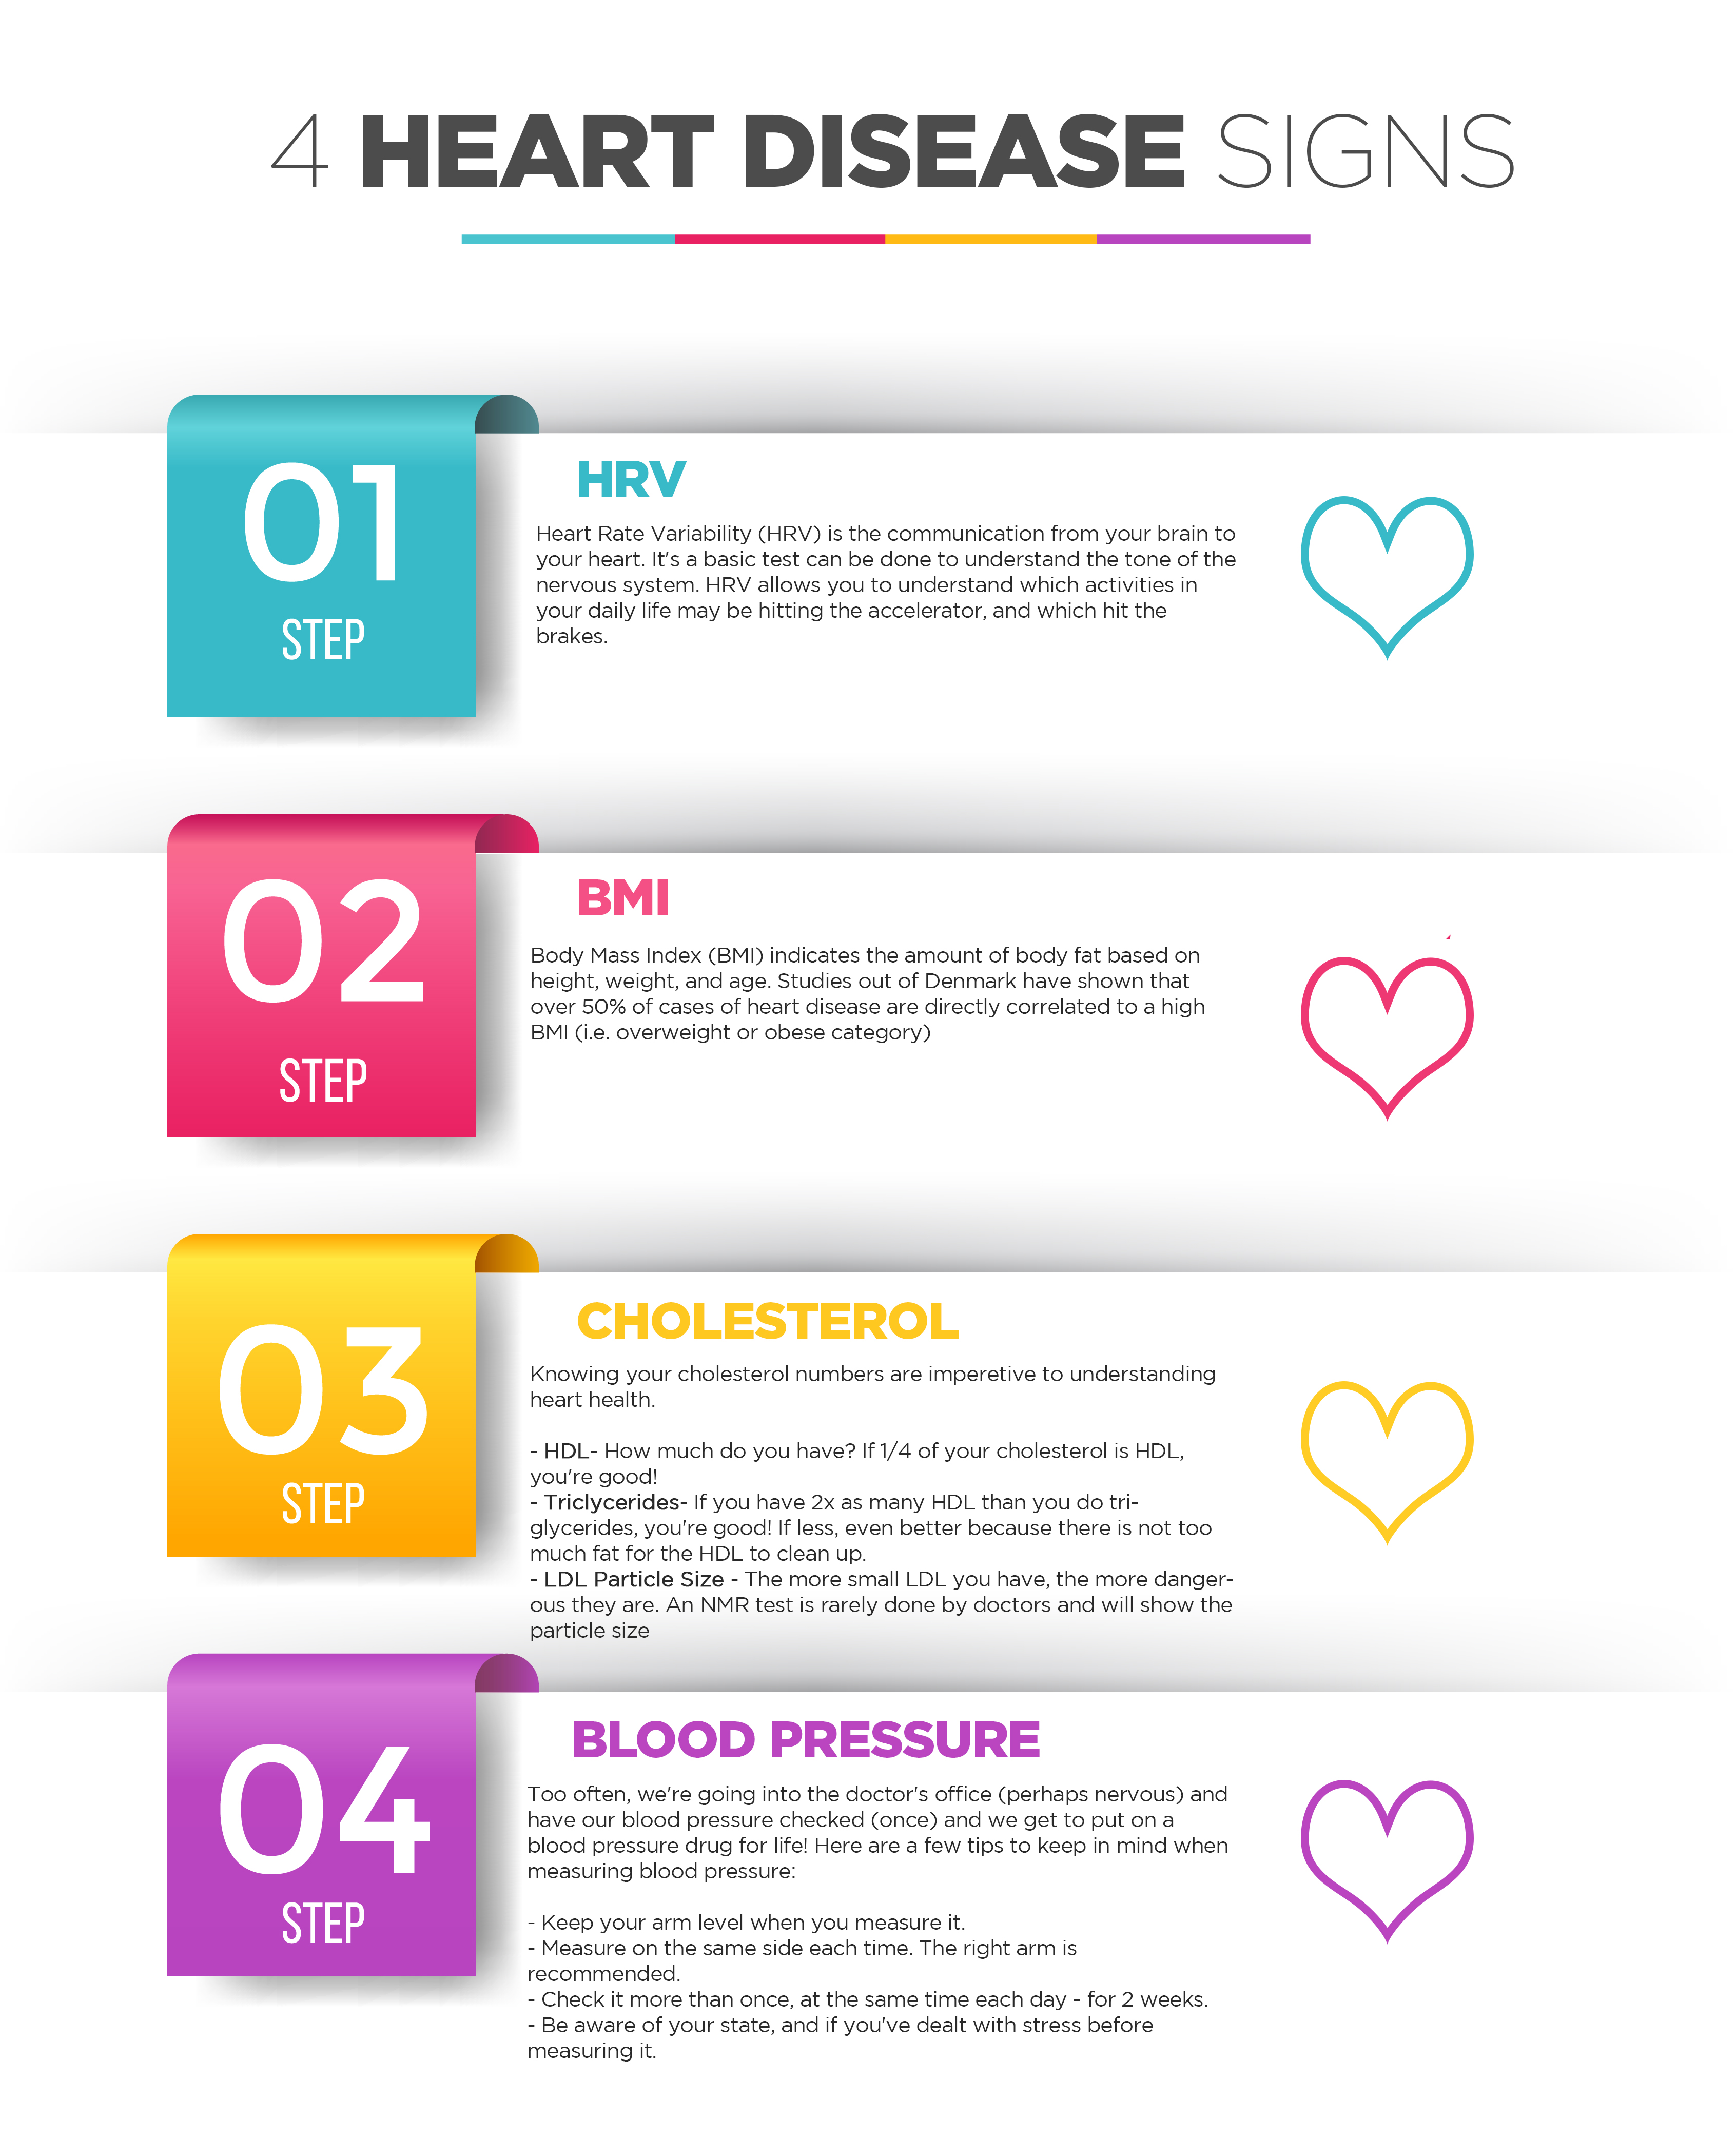 4 Heart Disease Signs